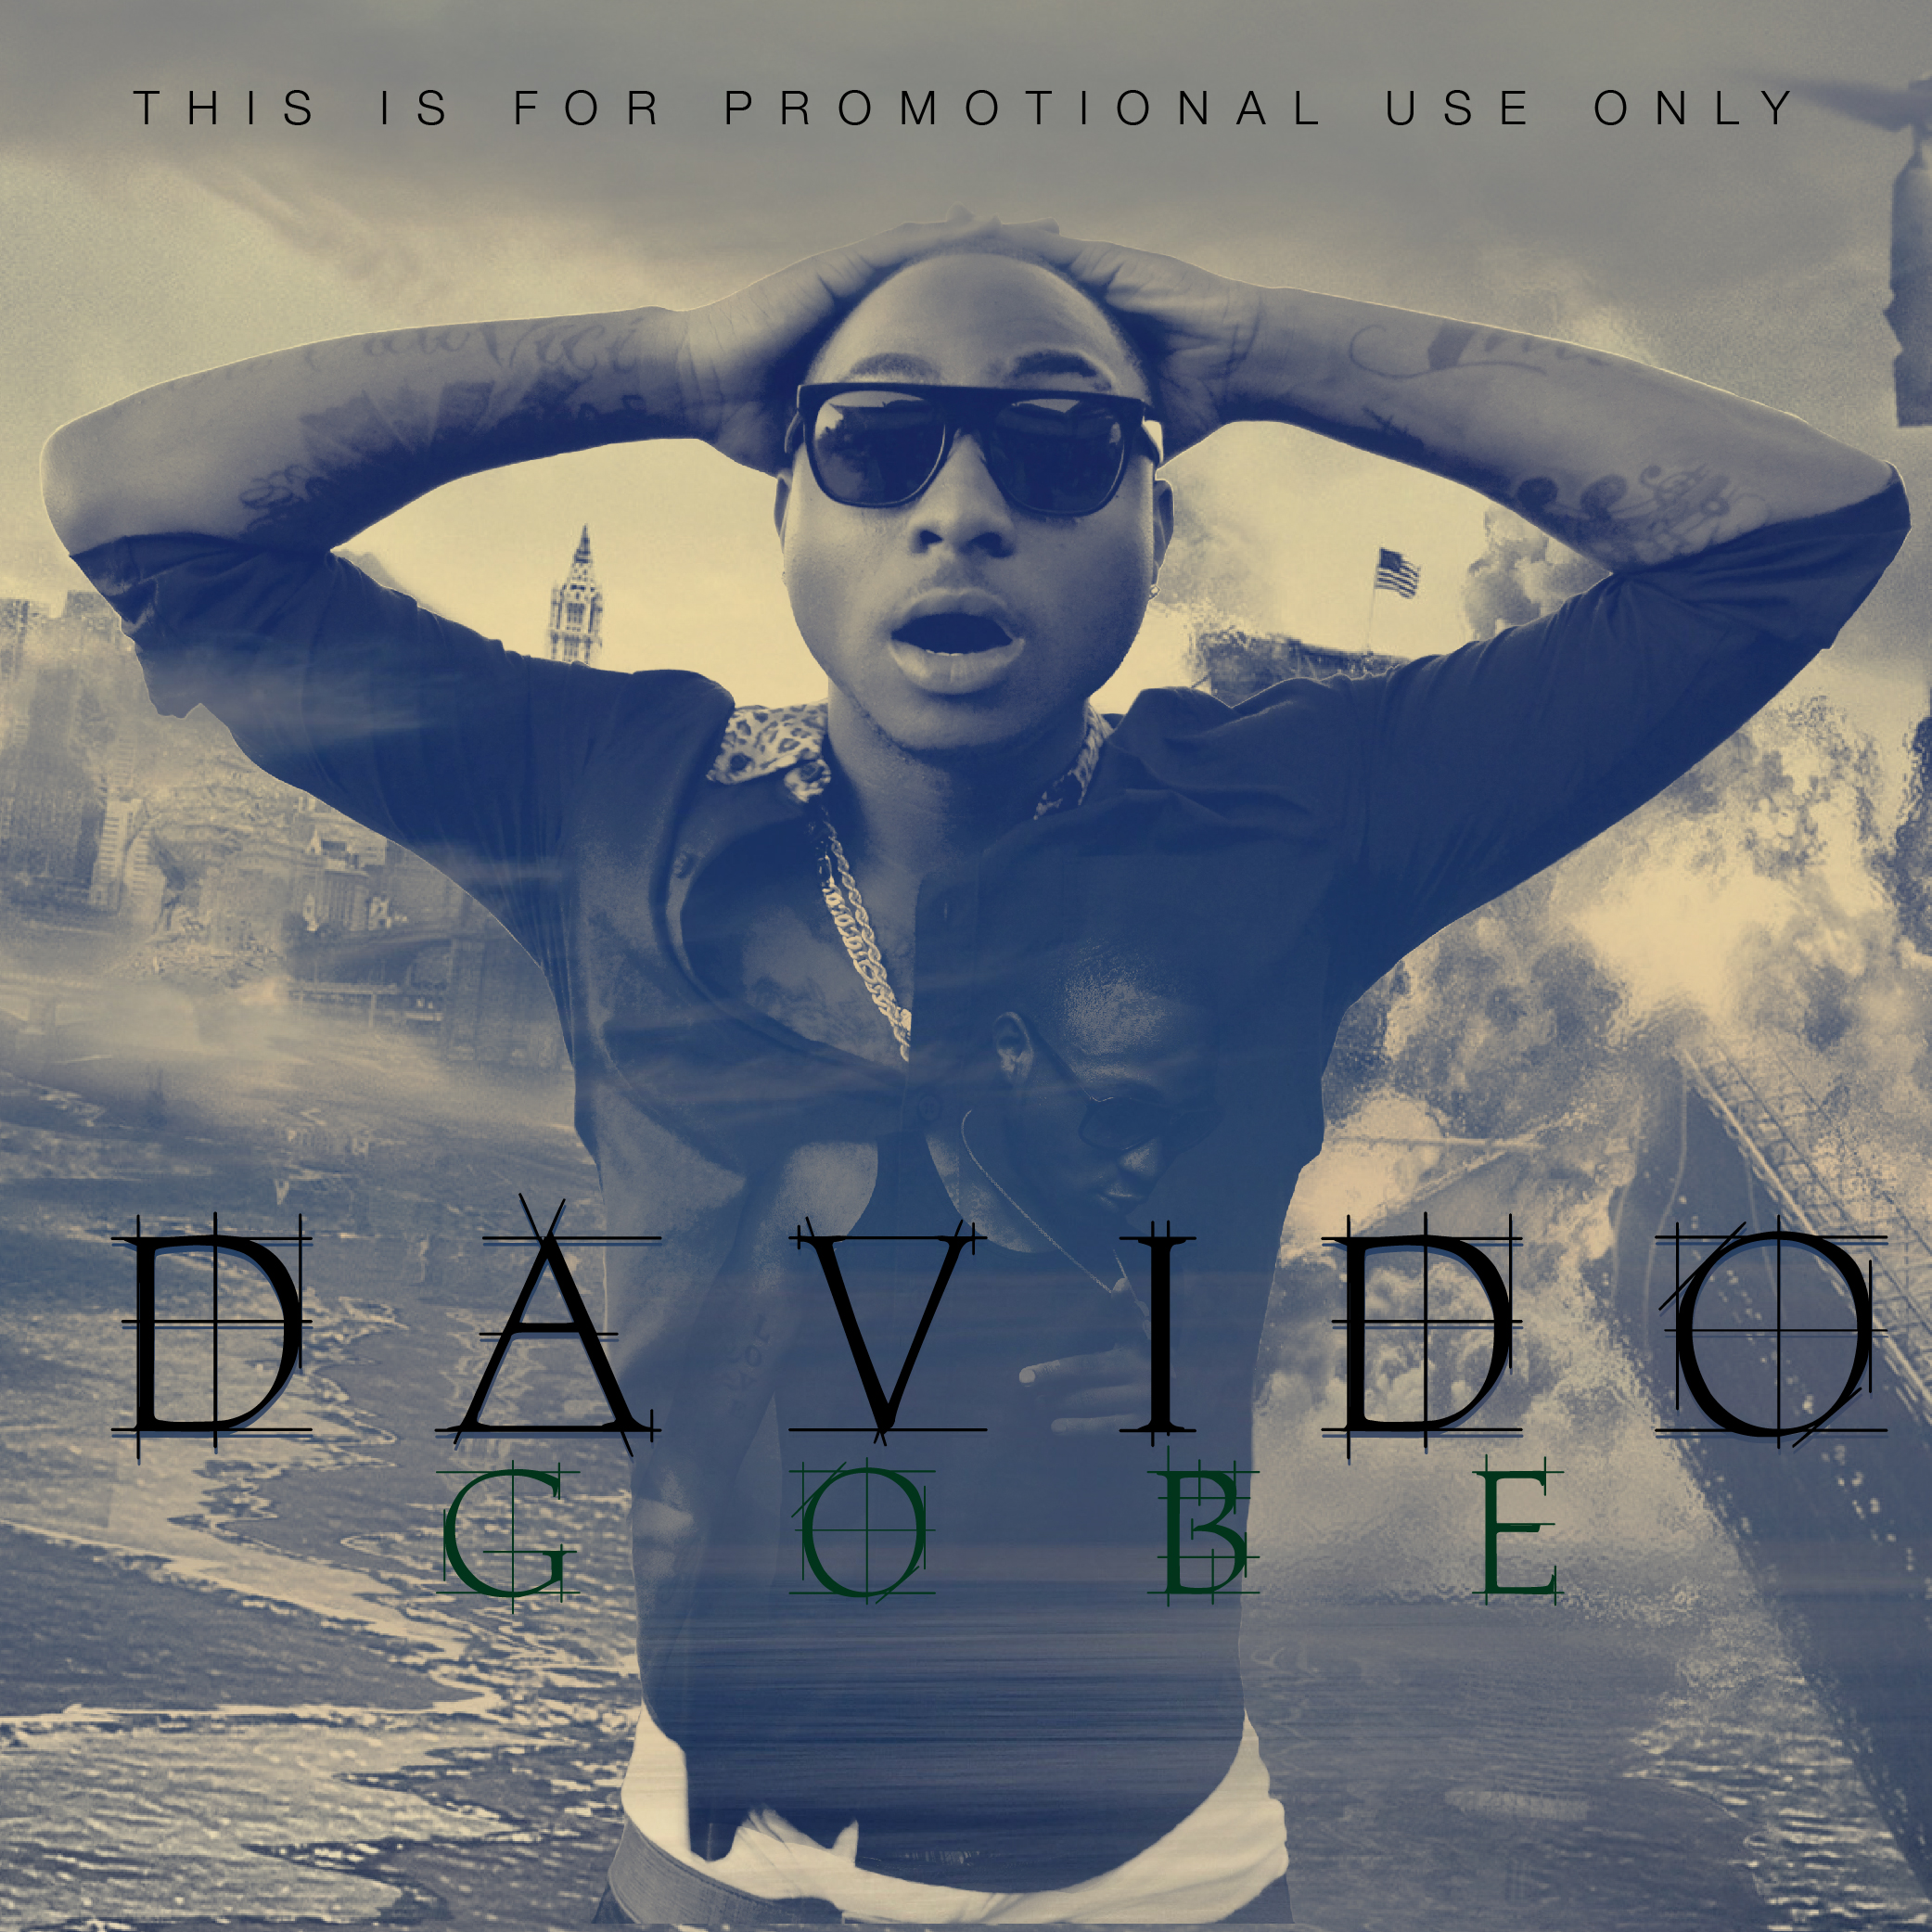 Davido Artwork v1a